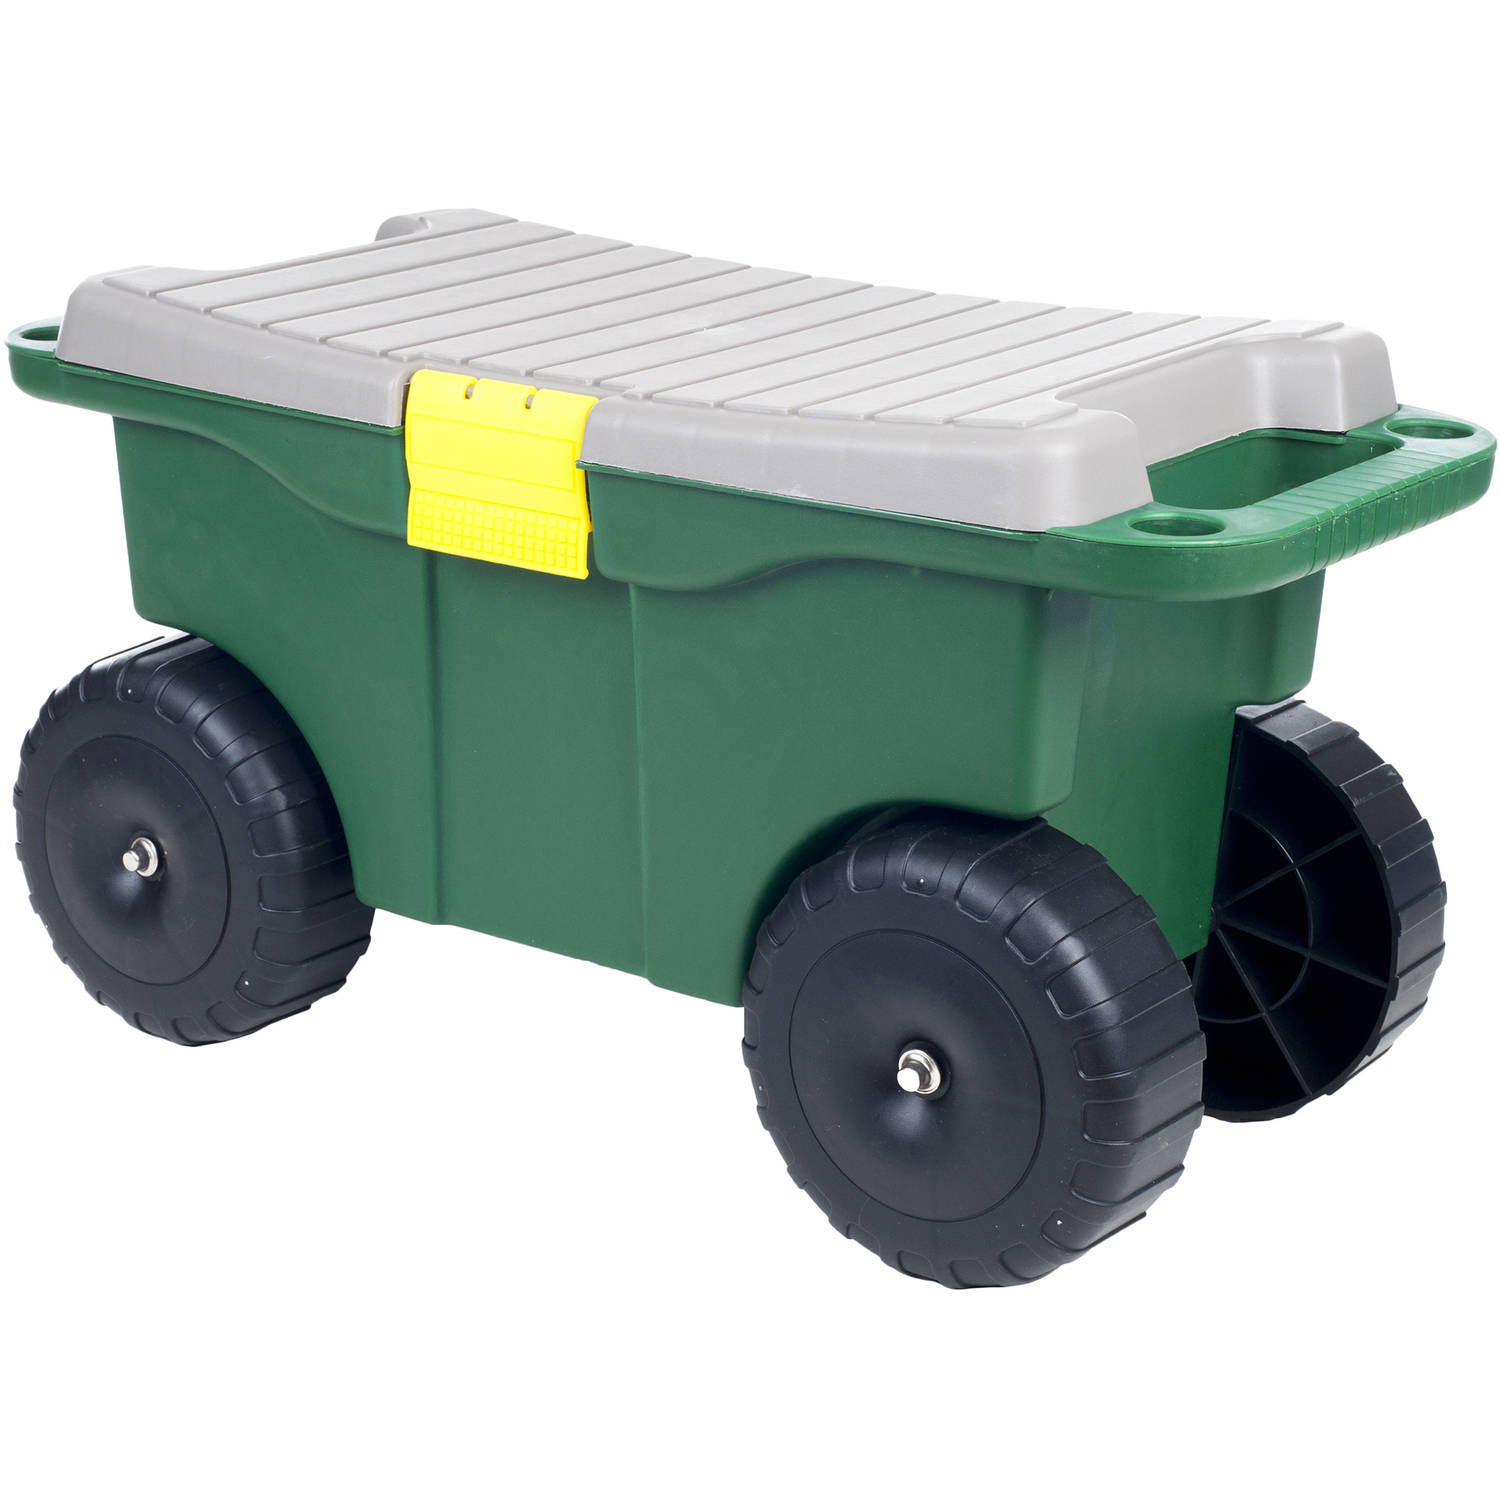 "Pure Garden 20"" Plastic Garden Storage Cart and Scooter"